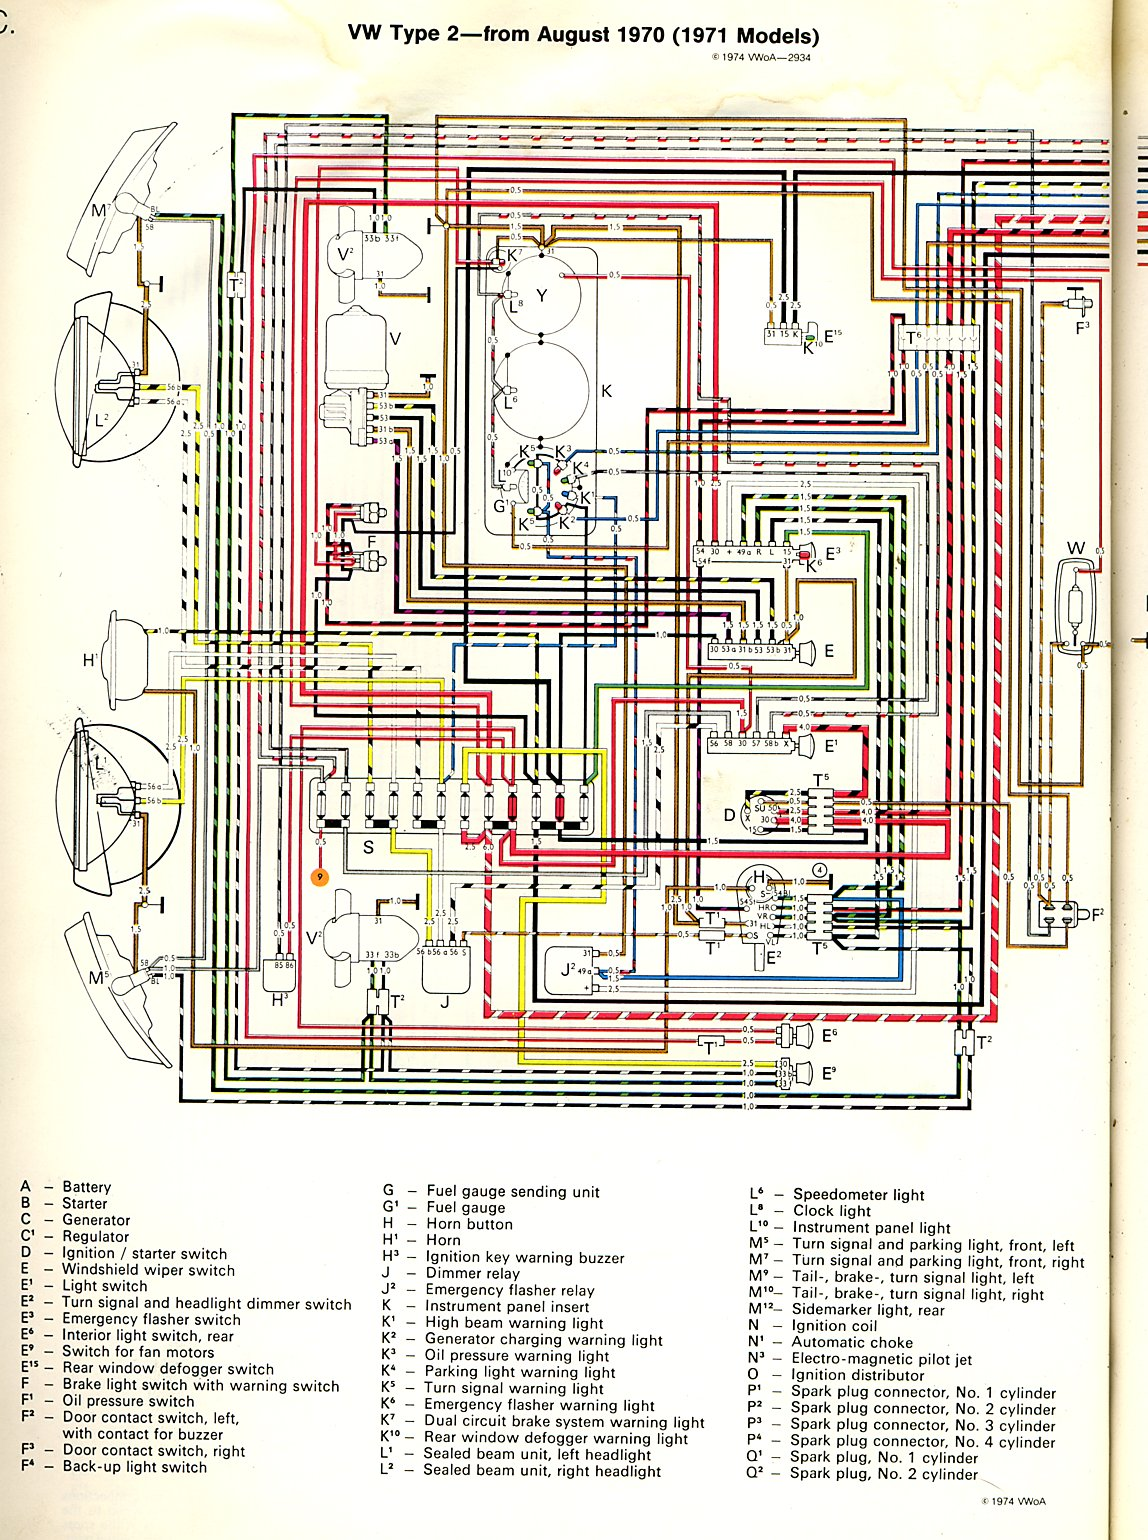 baybus_71a thesamba com type 2 wiring diagrams 1971 vw bus wiring diagram at mr168.co